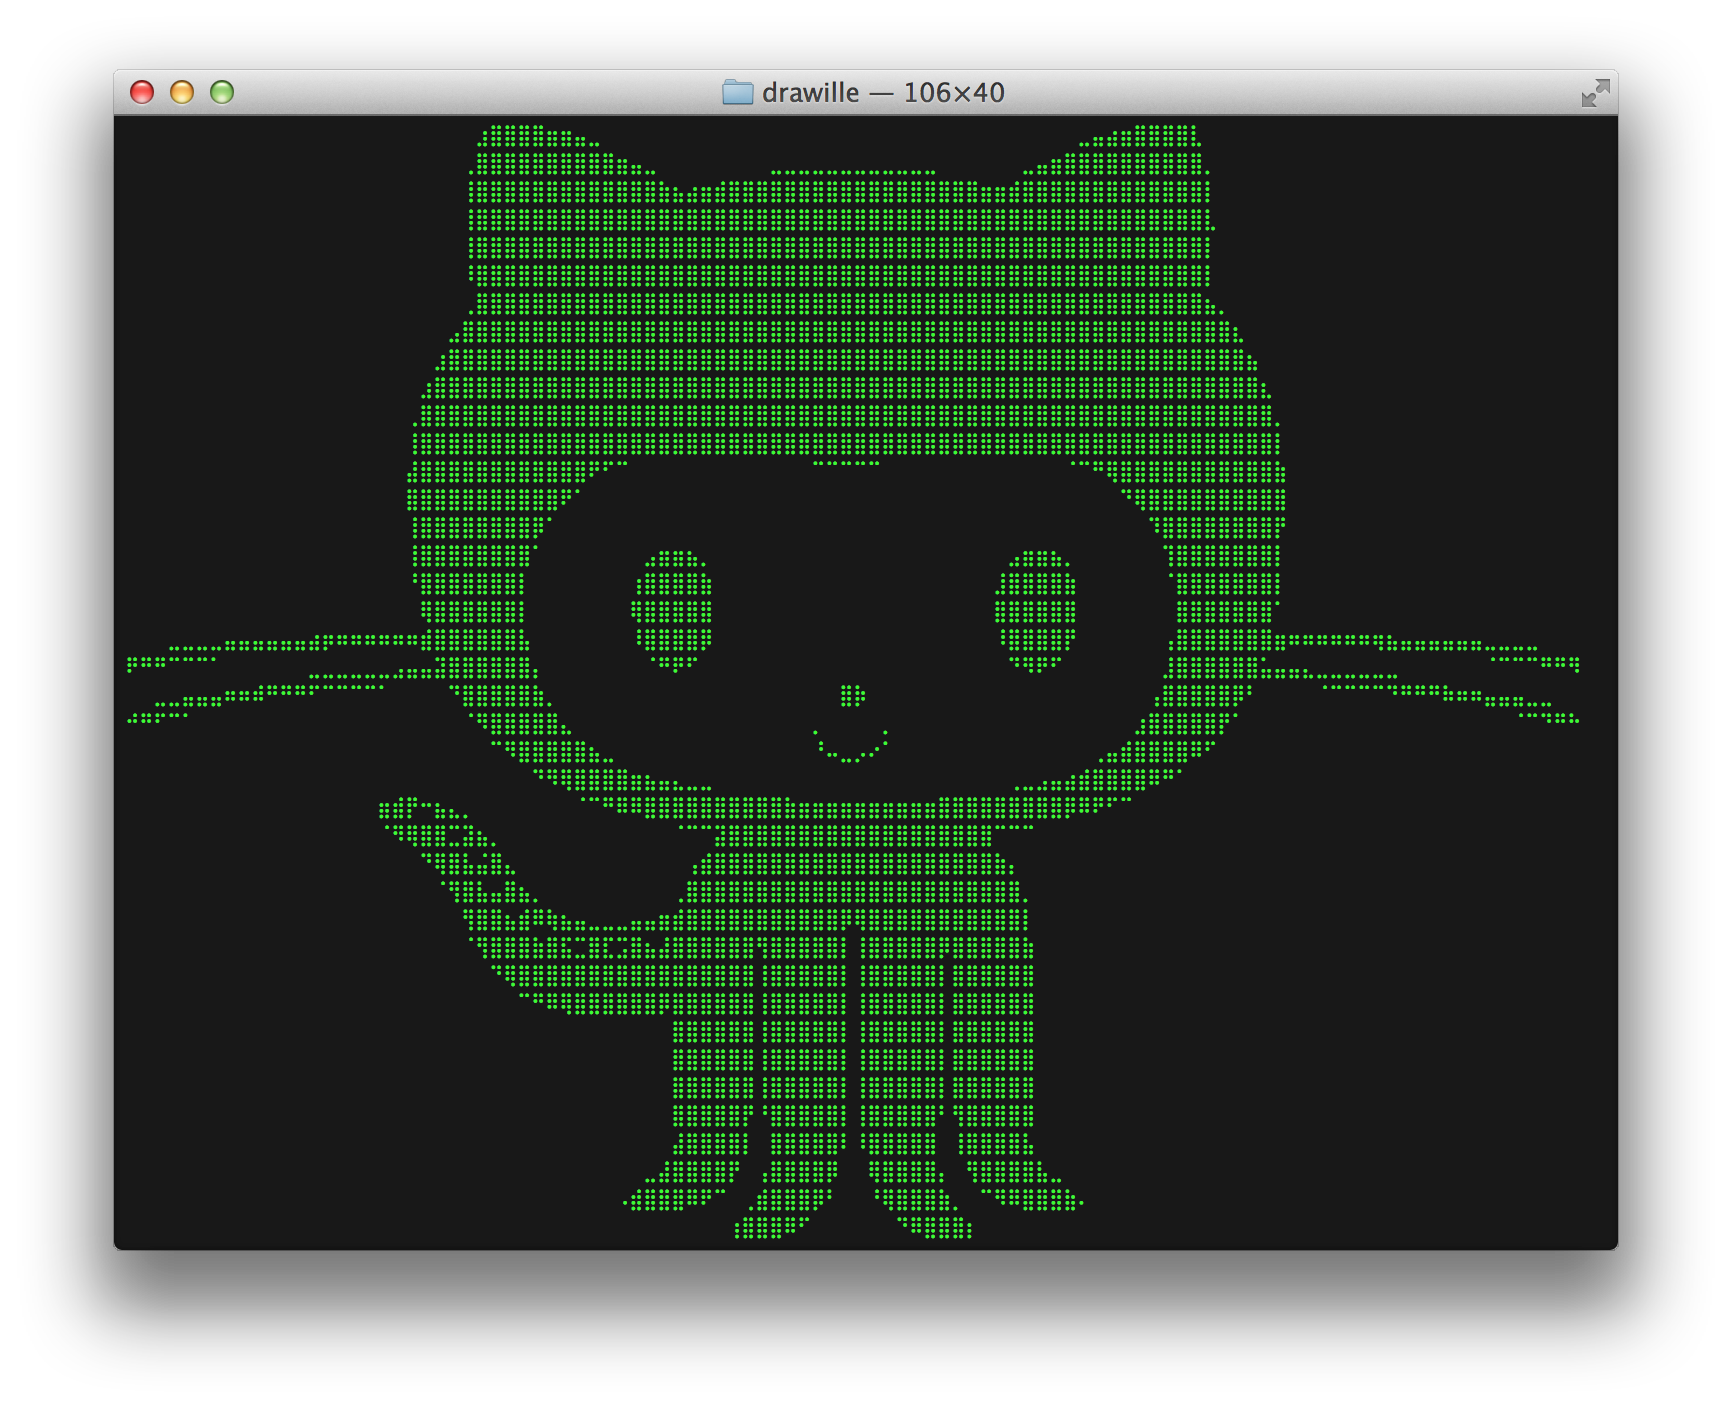 Octocat example